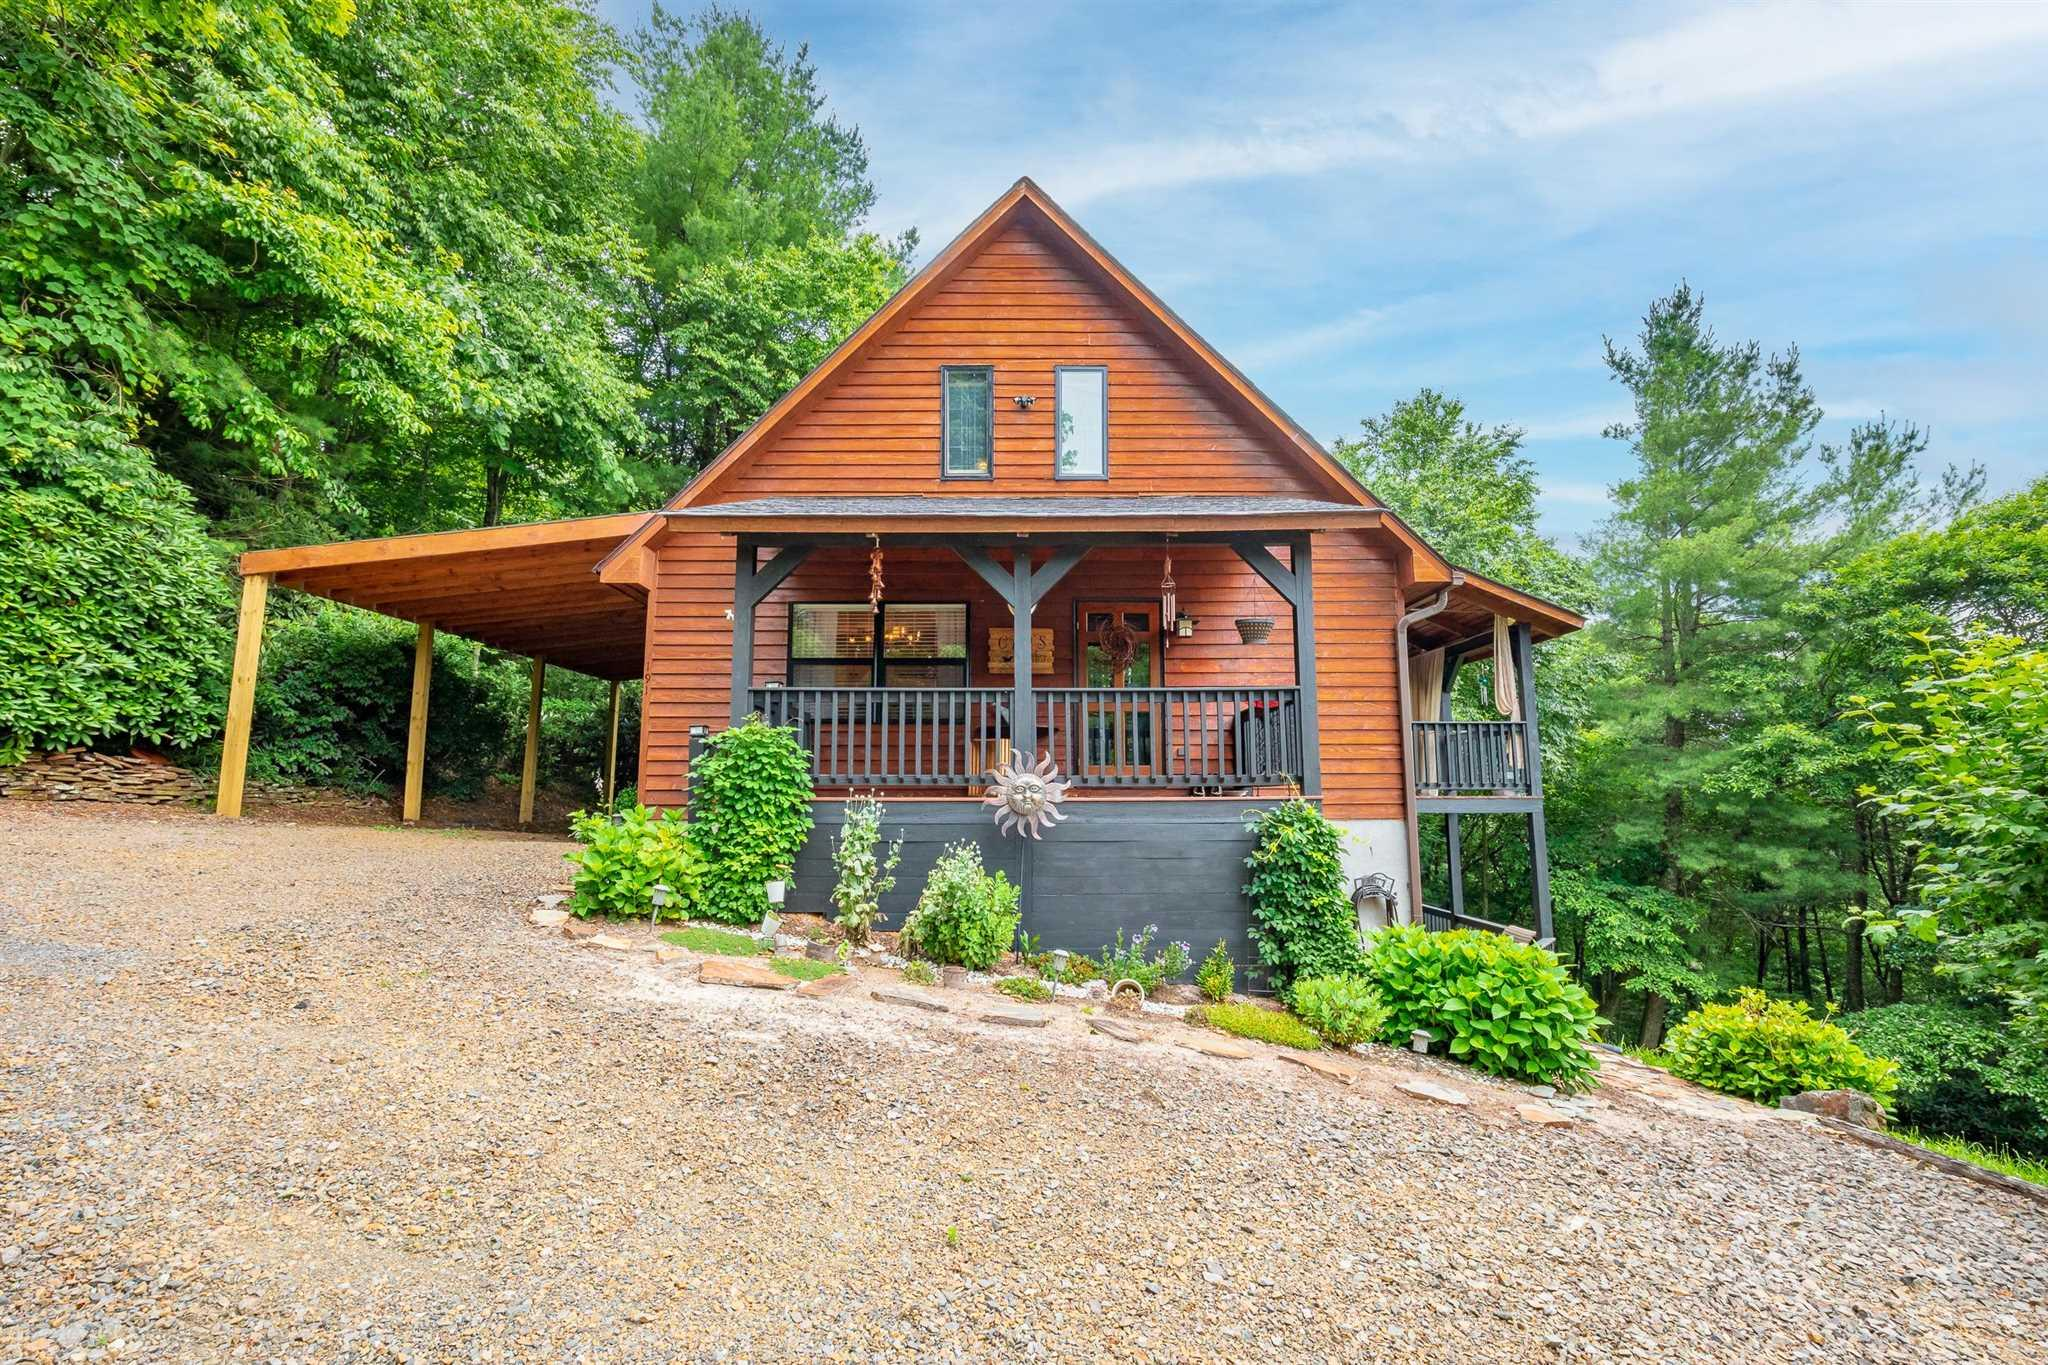 Beautiful cedar siding cabin in Chalet High just off the Blue Ridge Parkway. You have a nice view of Pilot Mountain from the deck. The home features 3 bedrooms, 2 full bath, a large loft over looking living area an open floor plan on the main level. This home is being sold fully furnished, including family entertainment room with recreation pool table, gaming / TV area, dart board, foosball table. New Roof September 2018, new flooring throughout New mini-split heat and cool system in family rec area 2020, 2 gas log stoves, large covered upper deck, large covered lower deck with porch swing, large covered front porch, new extra large covered parking area 2021. Included in your dues are the community pool, tennis courts, club house with covered picnic shelter, fishing ponds, kids play ground. You are less than half mile from Skyland Lake golf course. You are an hour from Winston Salem, an hour and a half from Greensboro, and 2 hours from Charlotte. 20 minutes for local shopping & dining.